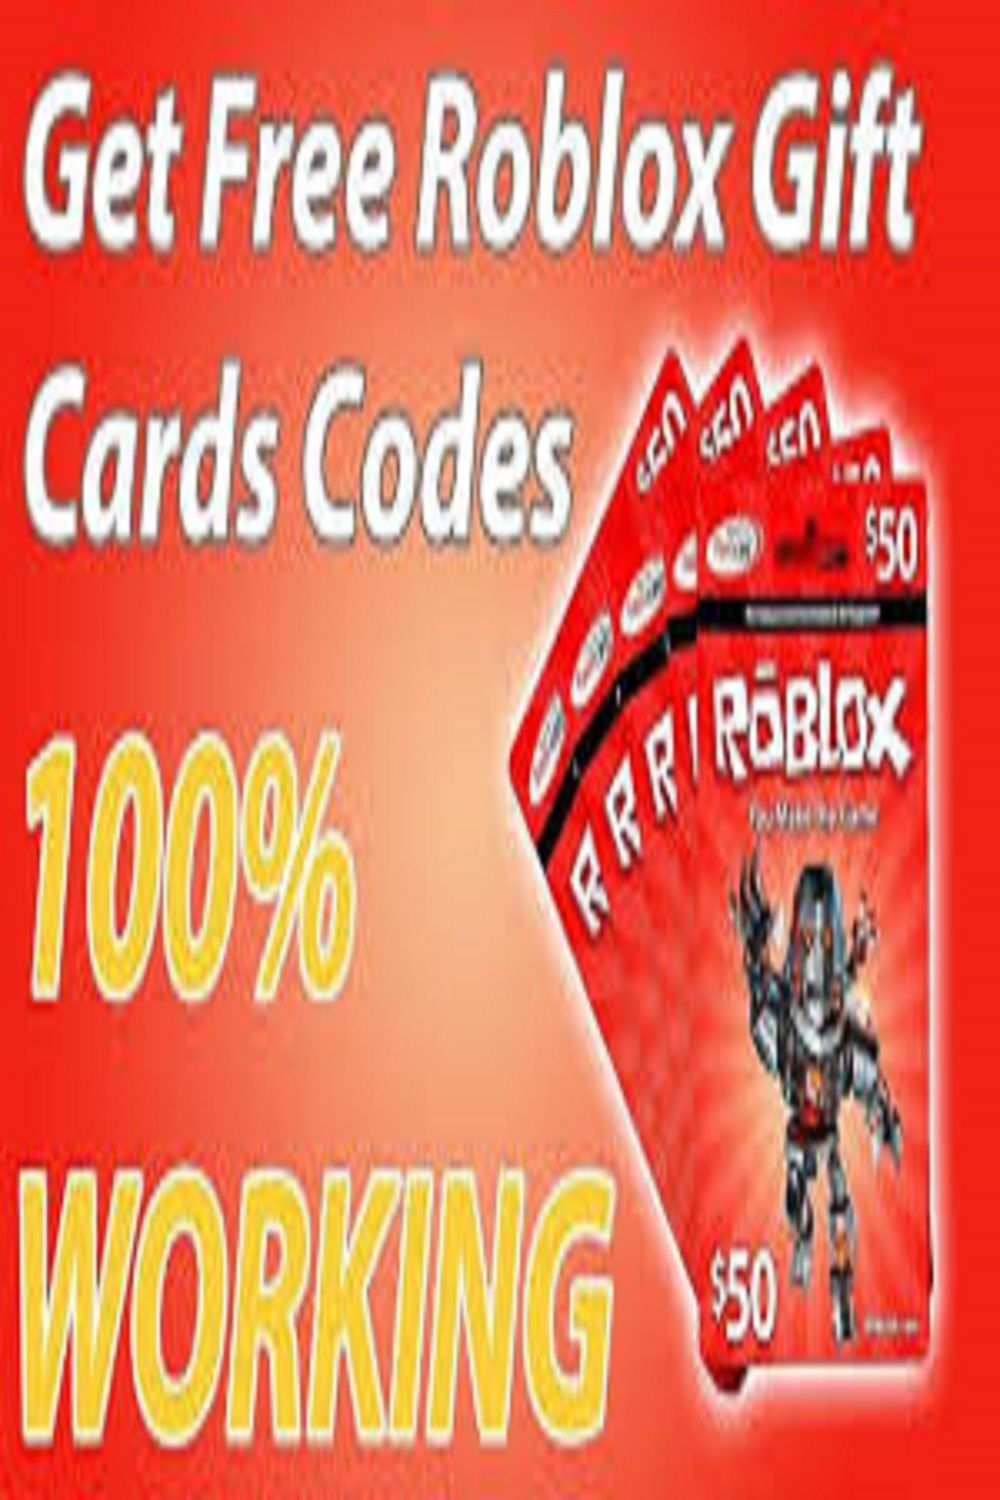 How To Get Free Roblox Gift Card Codes For Robux In 2020 In 2020